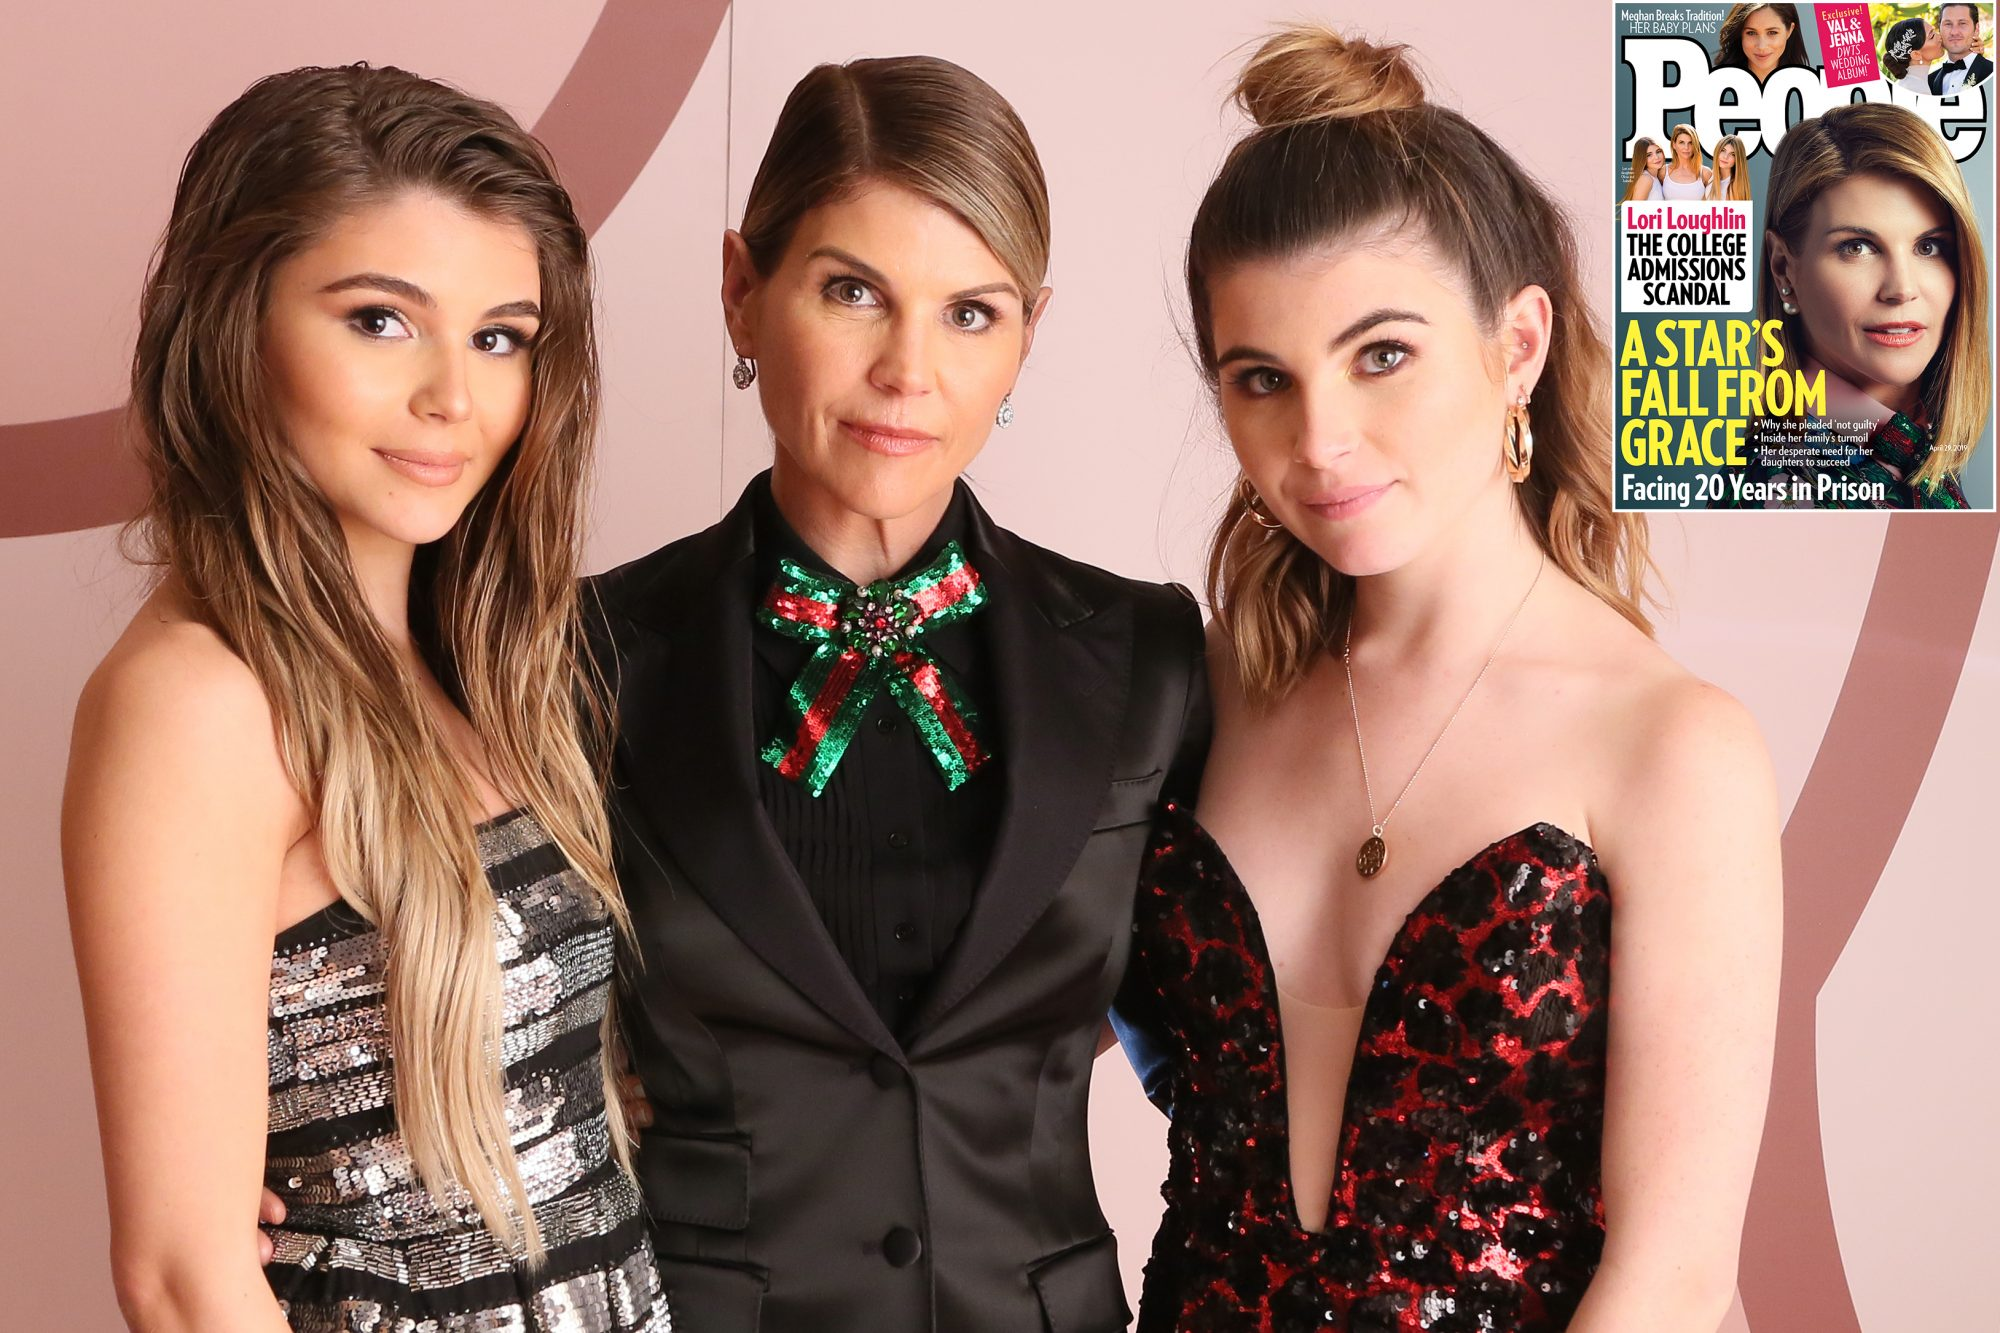 Lori Laughlin Olivia jade giannulli and Isabella rose giannulli